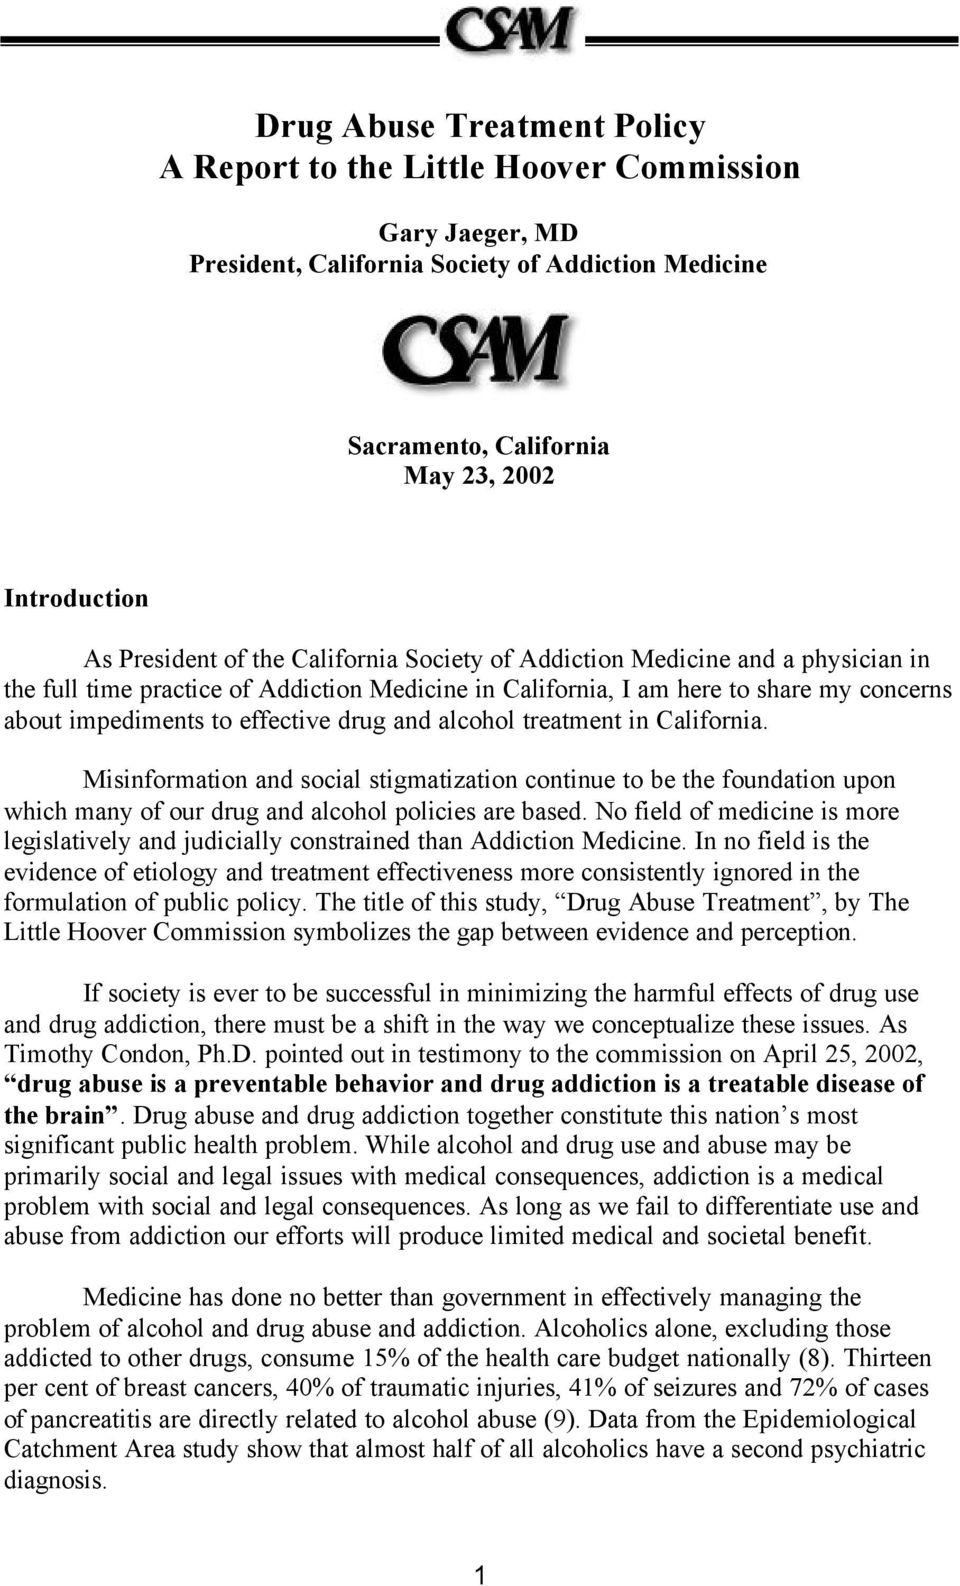 alcohol treatment in California. Misinformation and social stigmatization continue to be the foundation upon which many of our drug and alcohol policies are based.